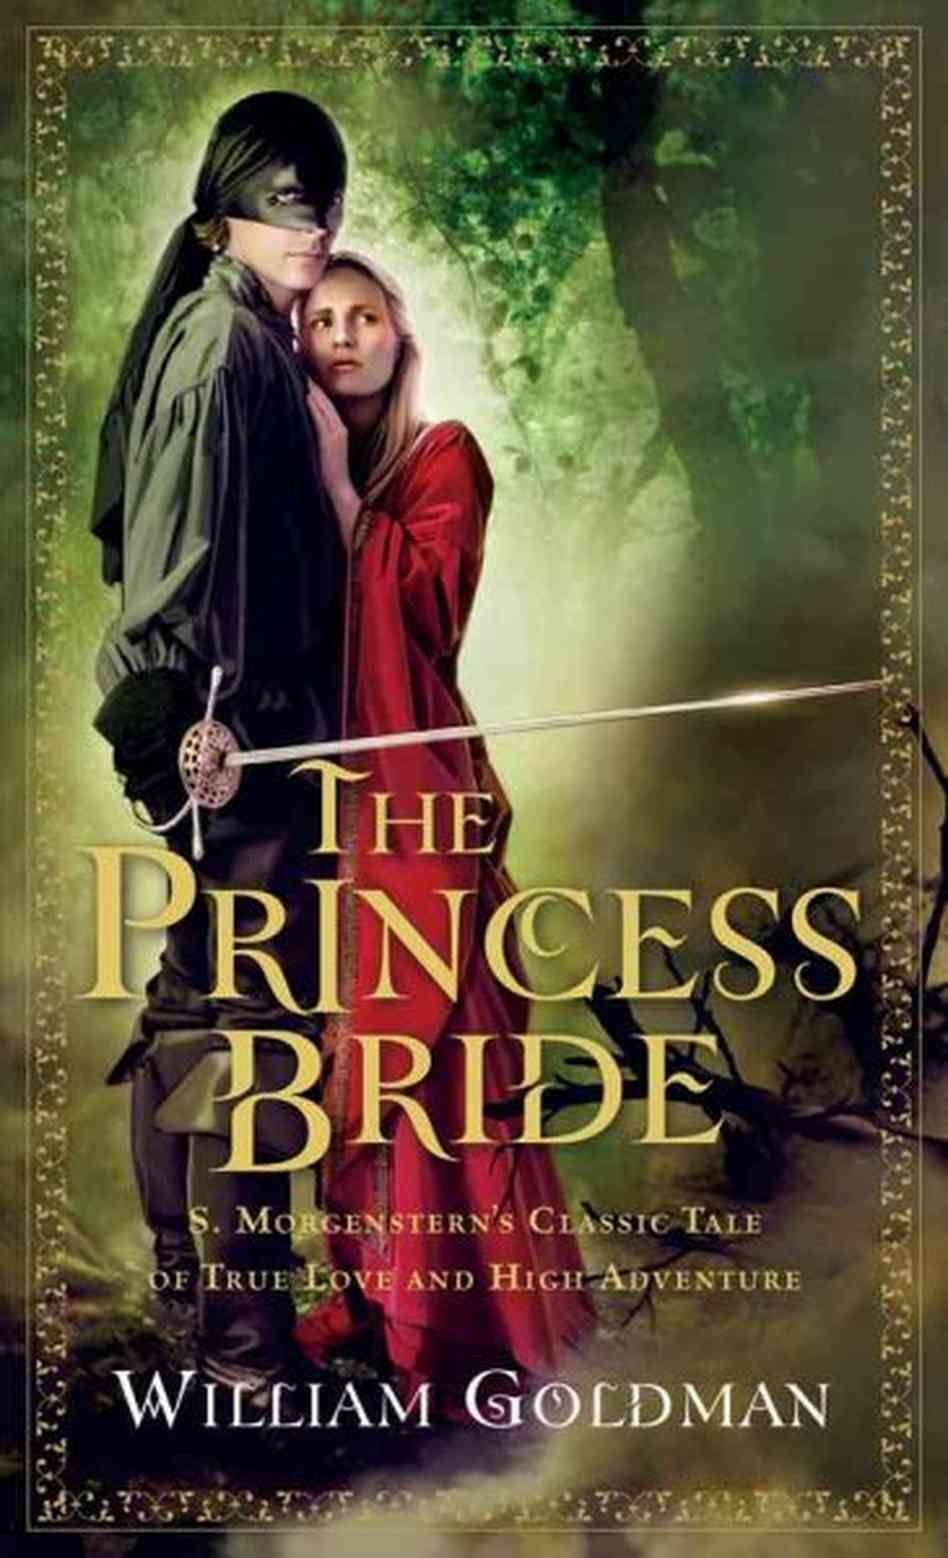 The cover of the book, The Princess Bride